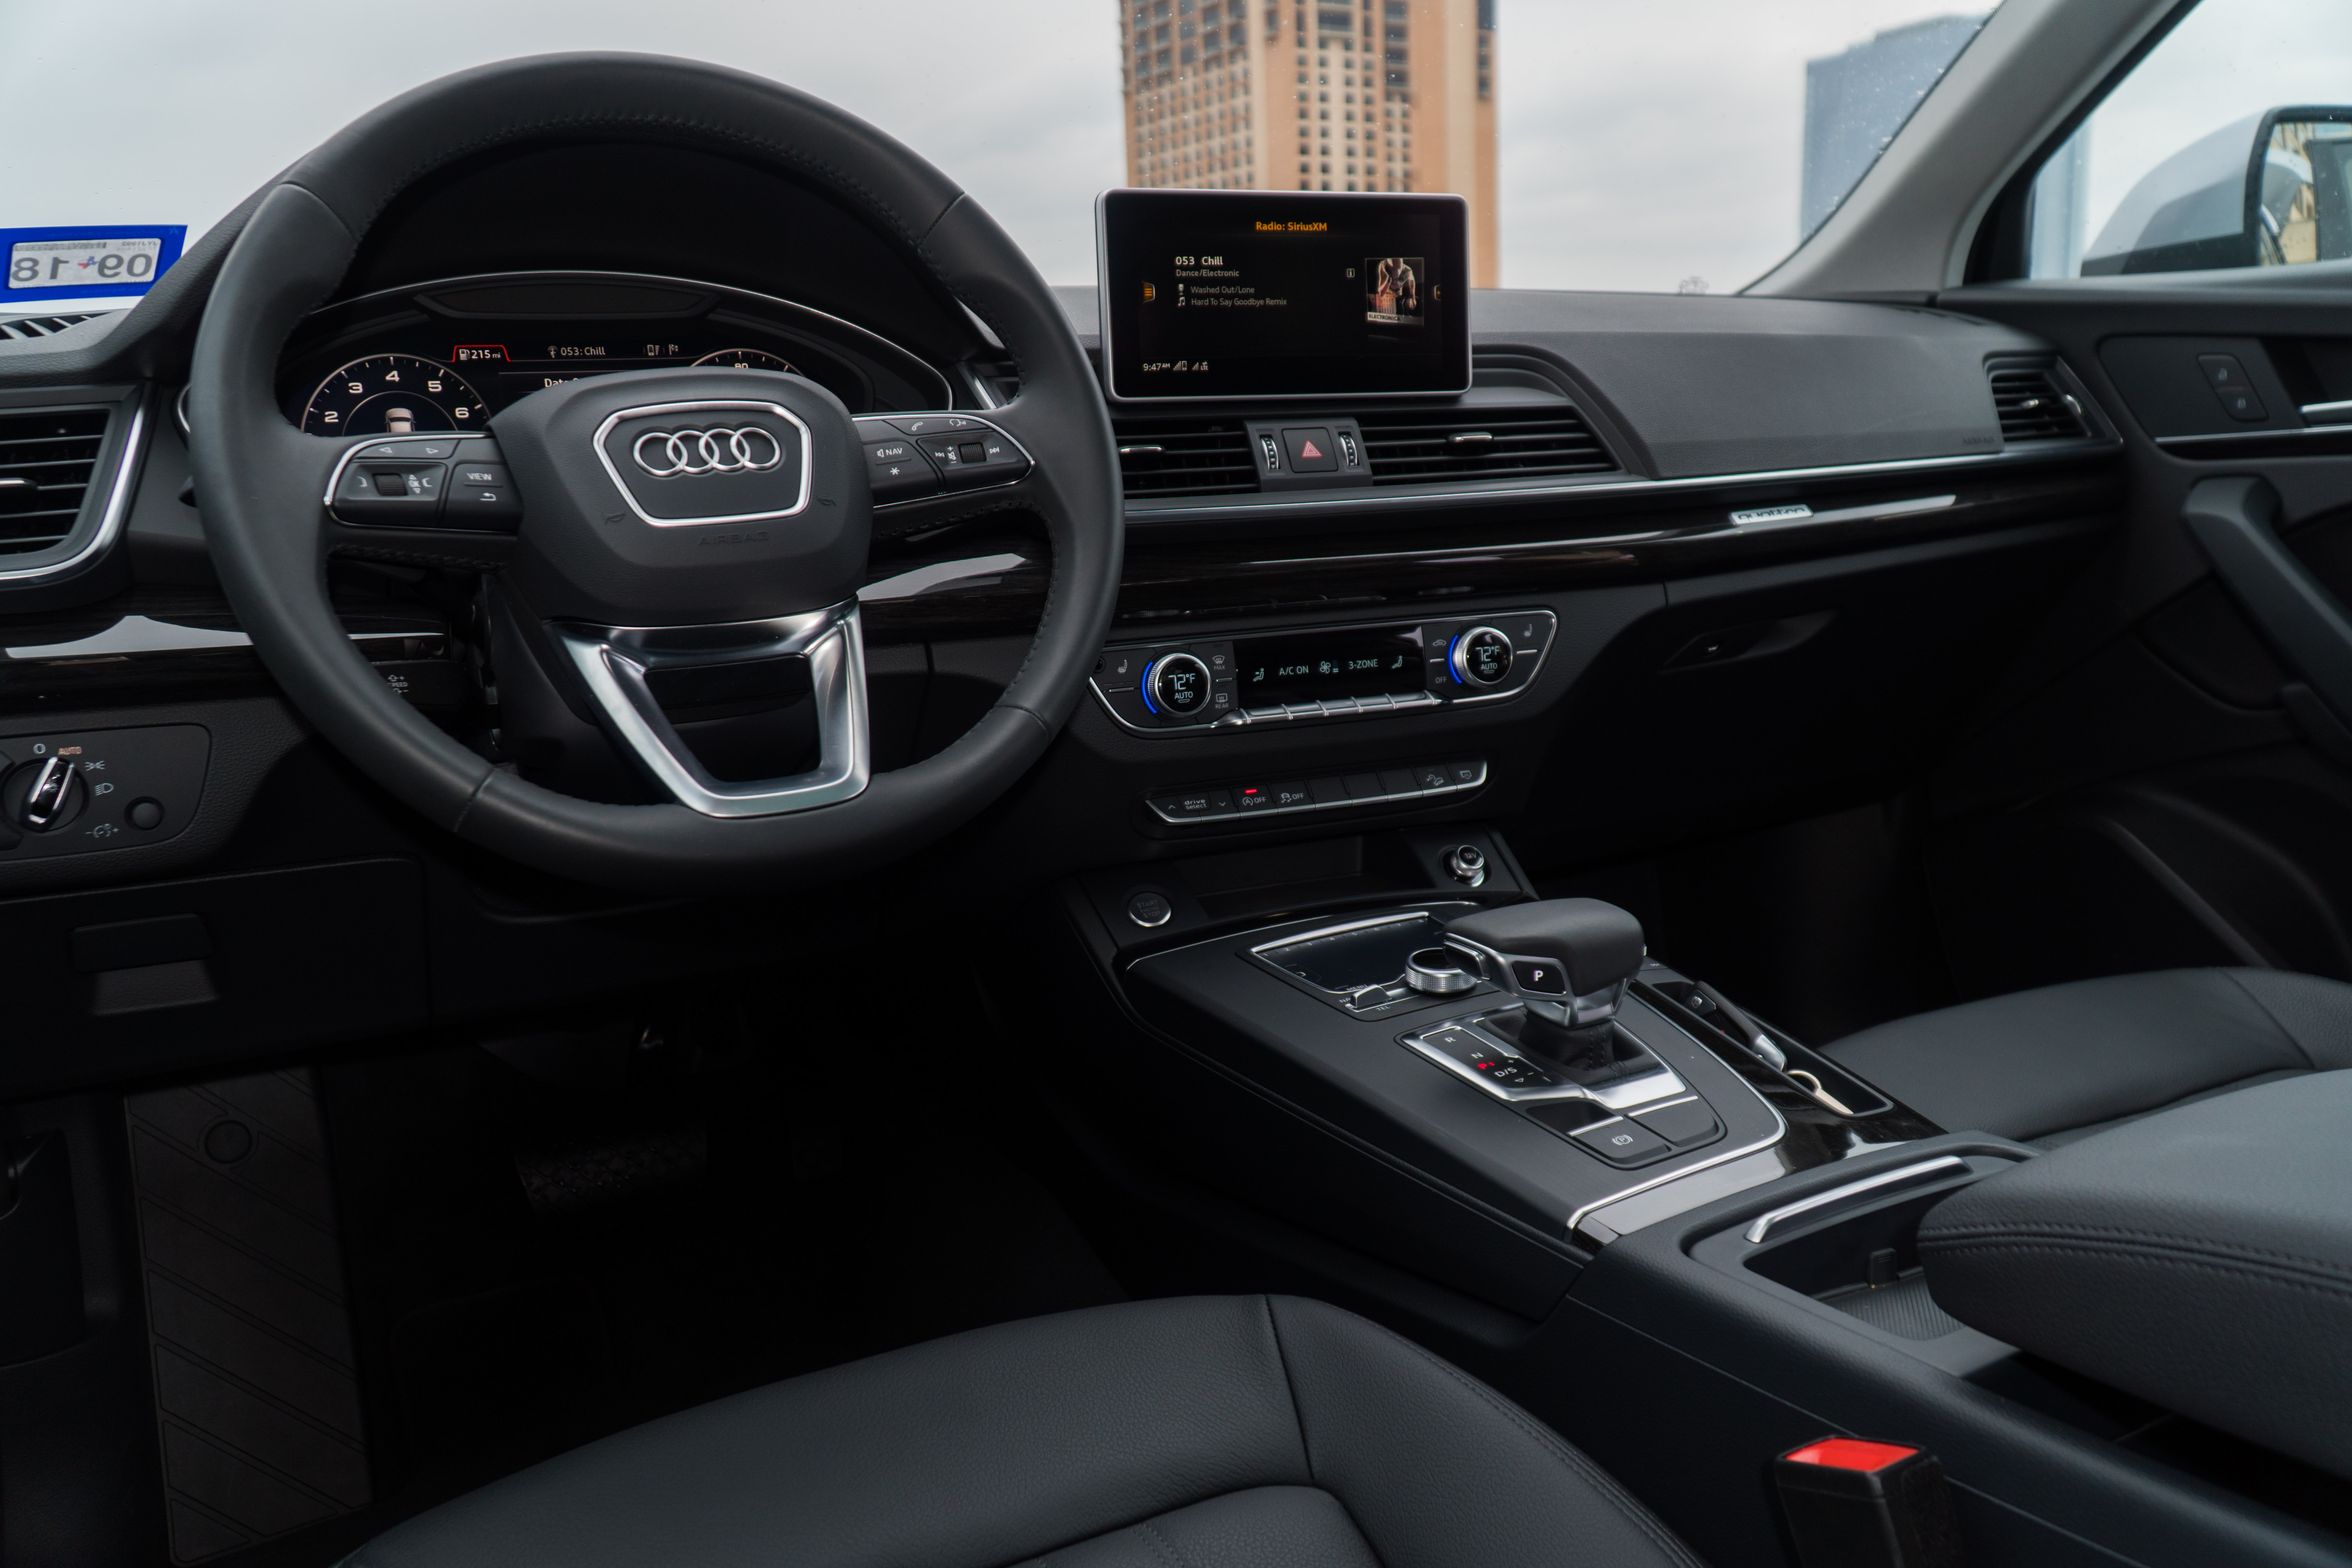 What Are The Interior Features Design Of The Audi Vehicles In The